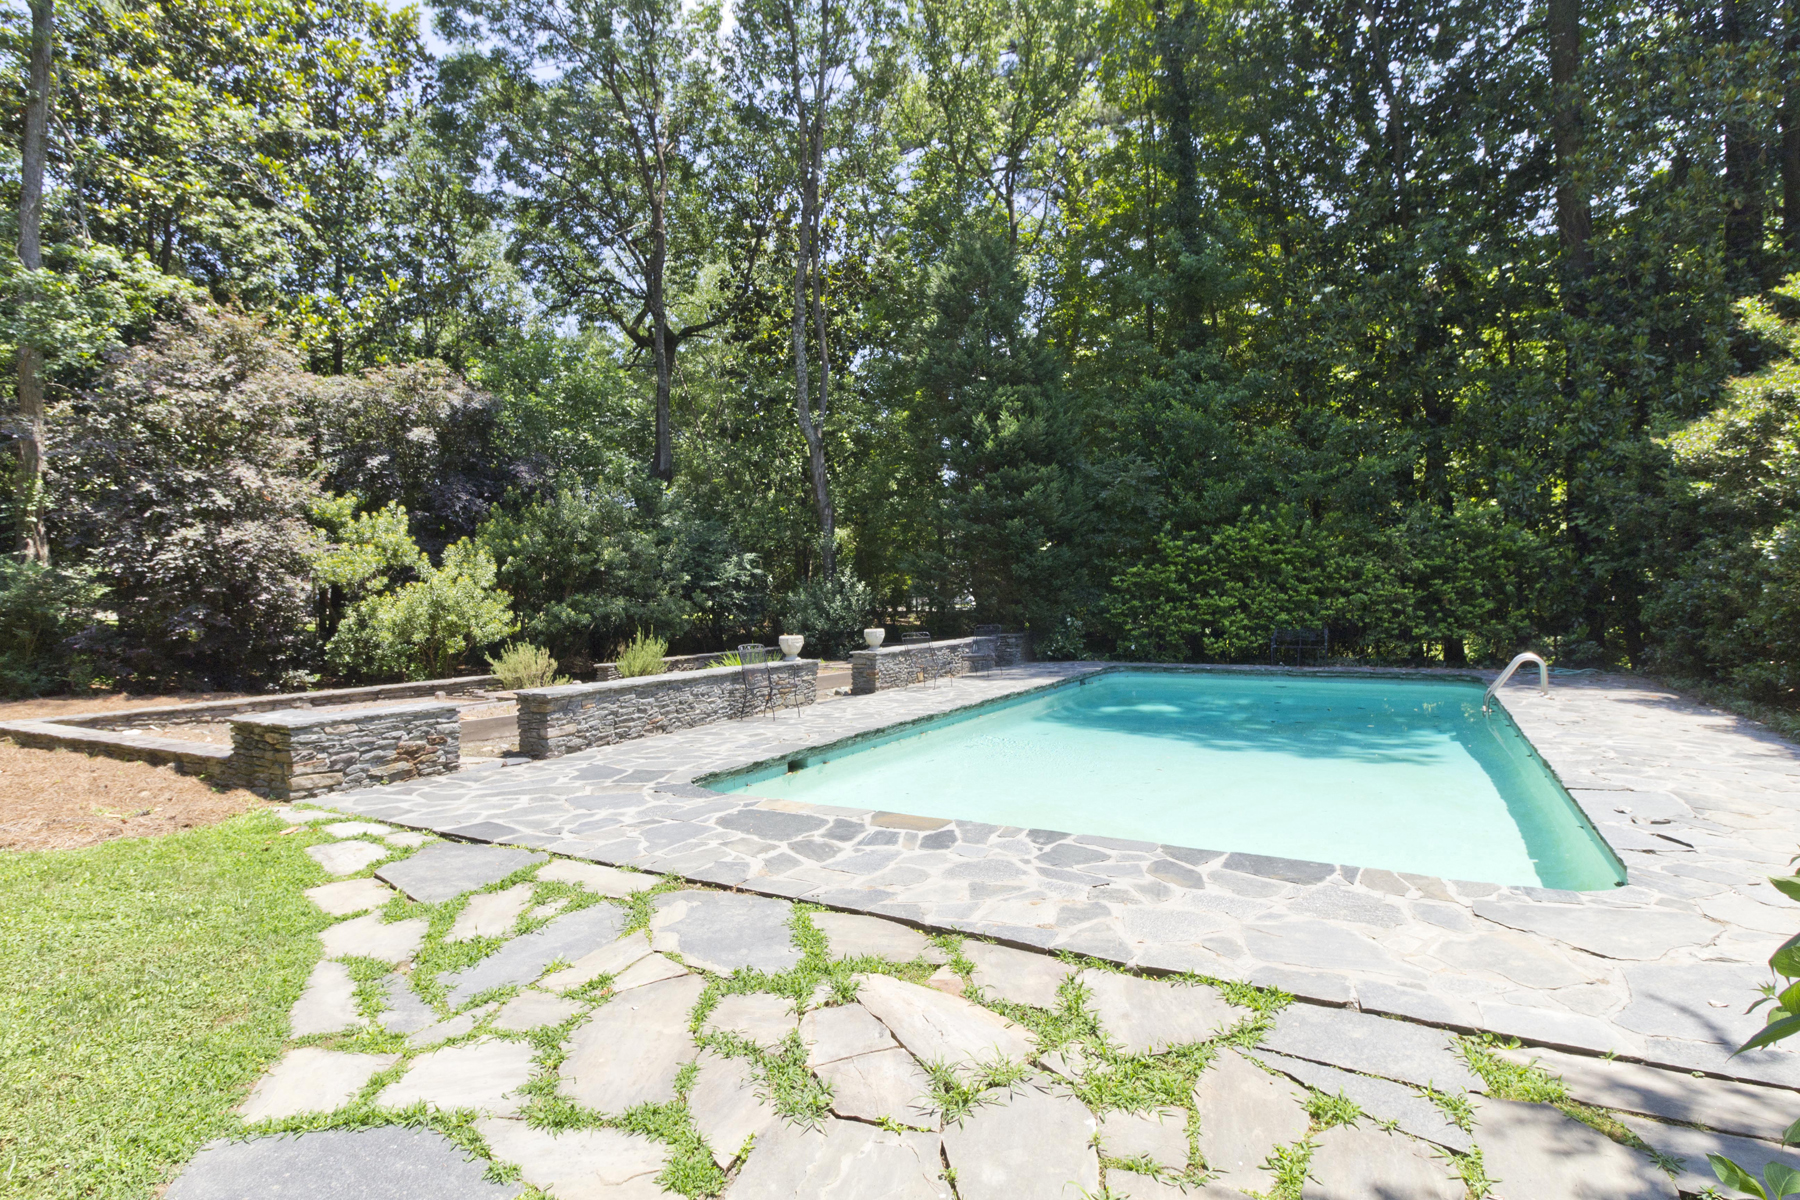 Additional photo for property listing at One Level Living, Pool, And Garden 3044 Nancy Creek Road NW Atlanta, Georgia 30327 Hoa Kỳ